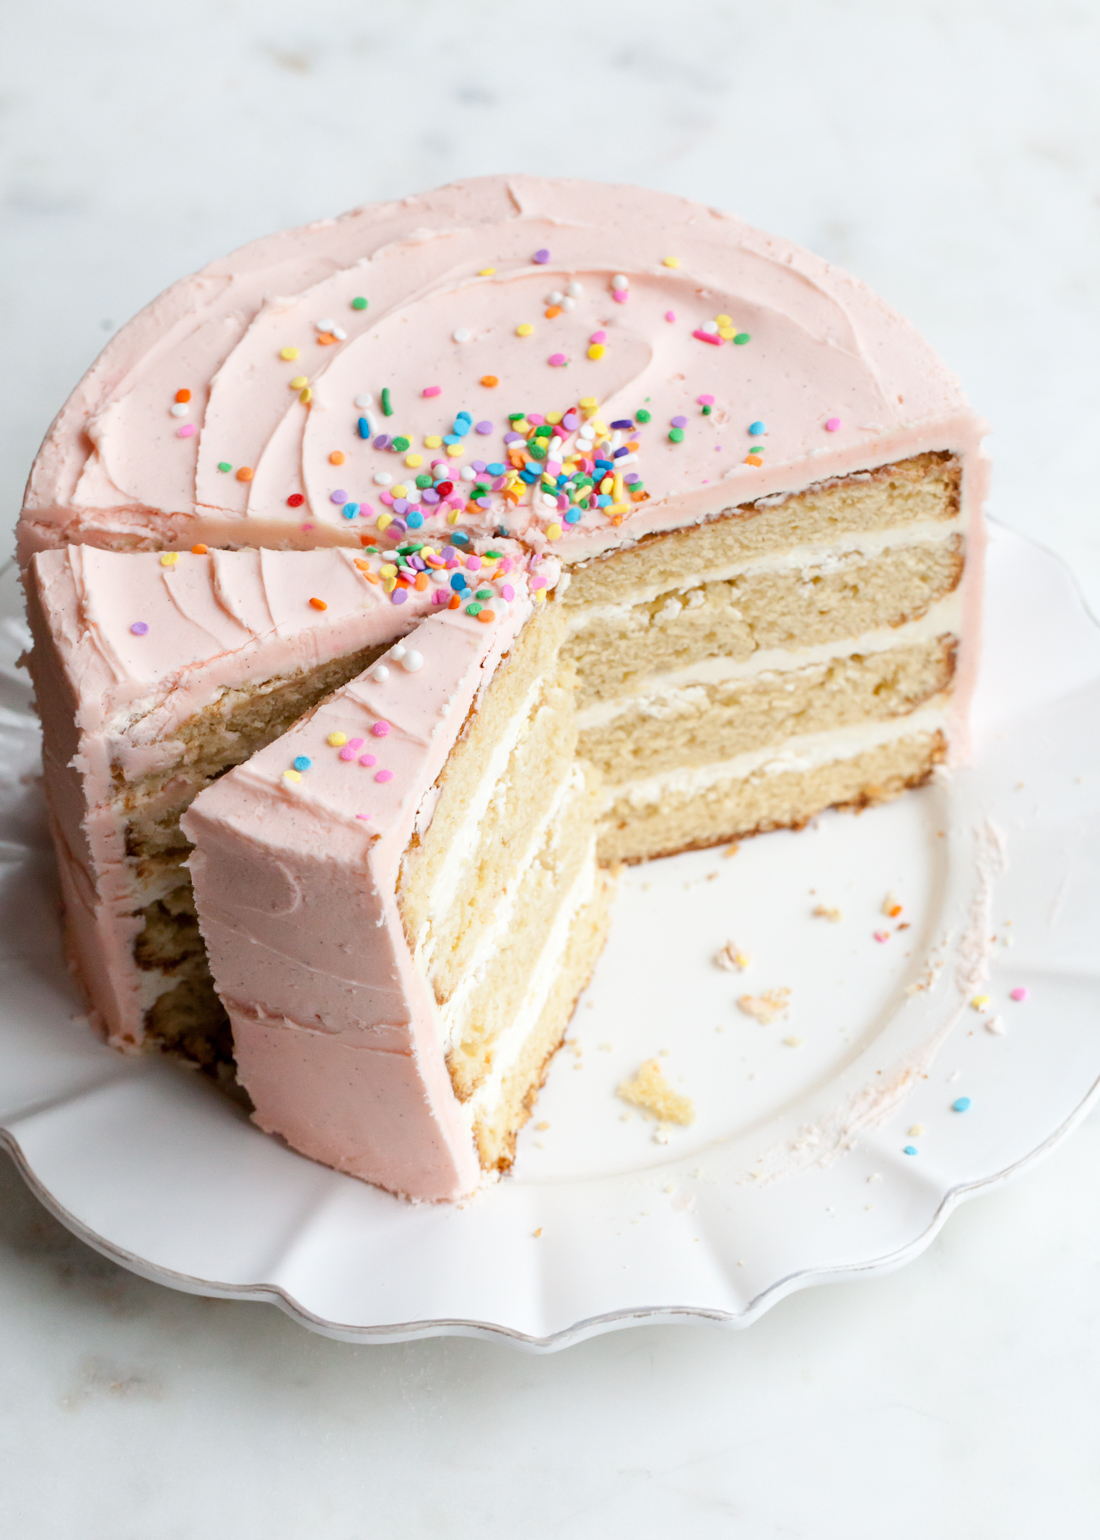 Vanilla bean cake with pink vanilla frosting and sprinkles.